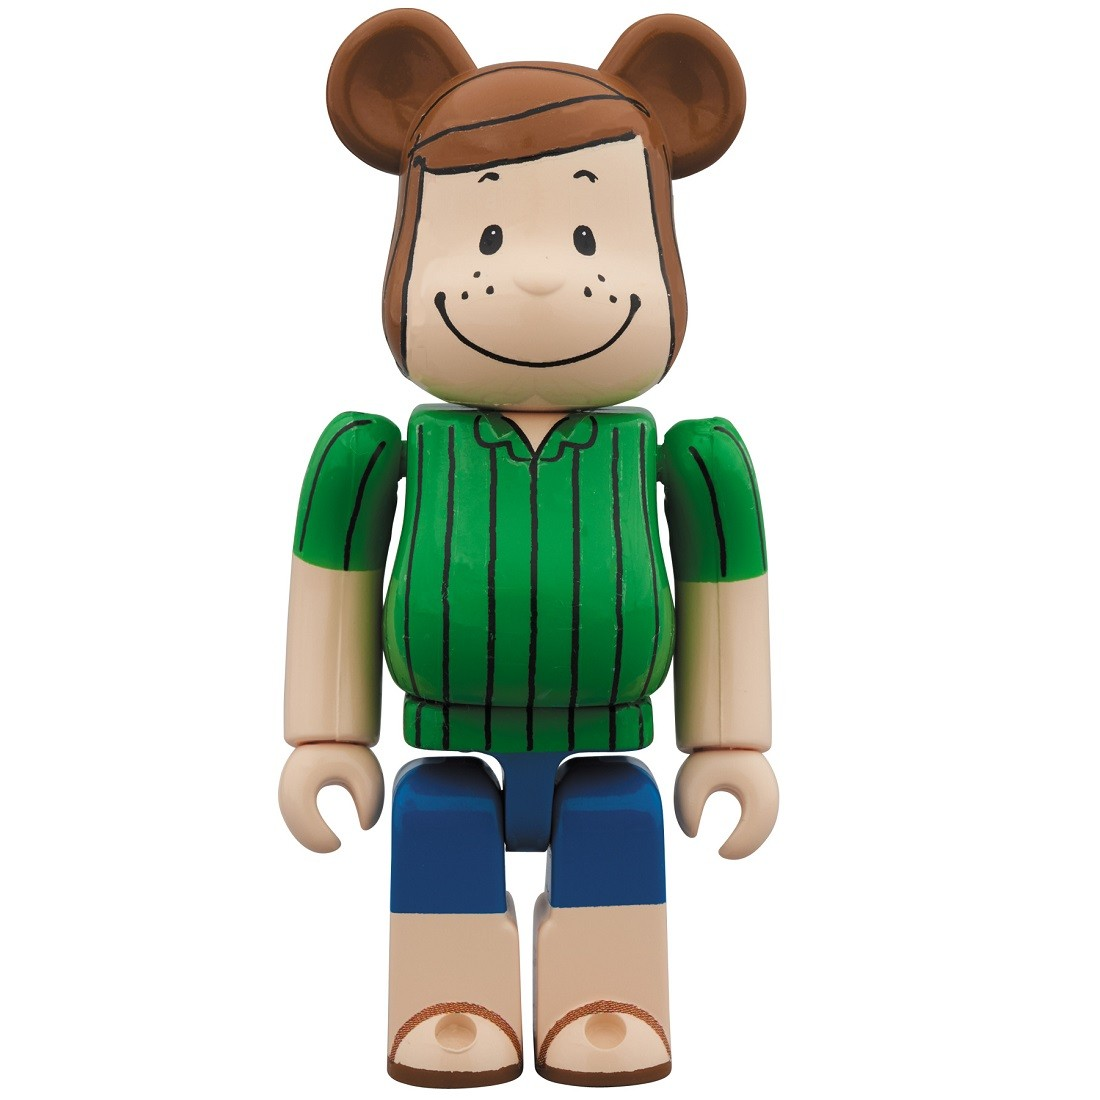 PREORDER - Medicom Peanuts Peppermint Patty 100% Bearbrick Figure (green)